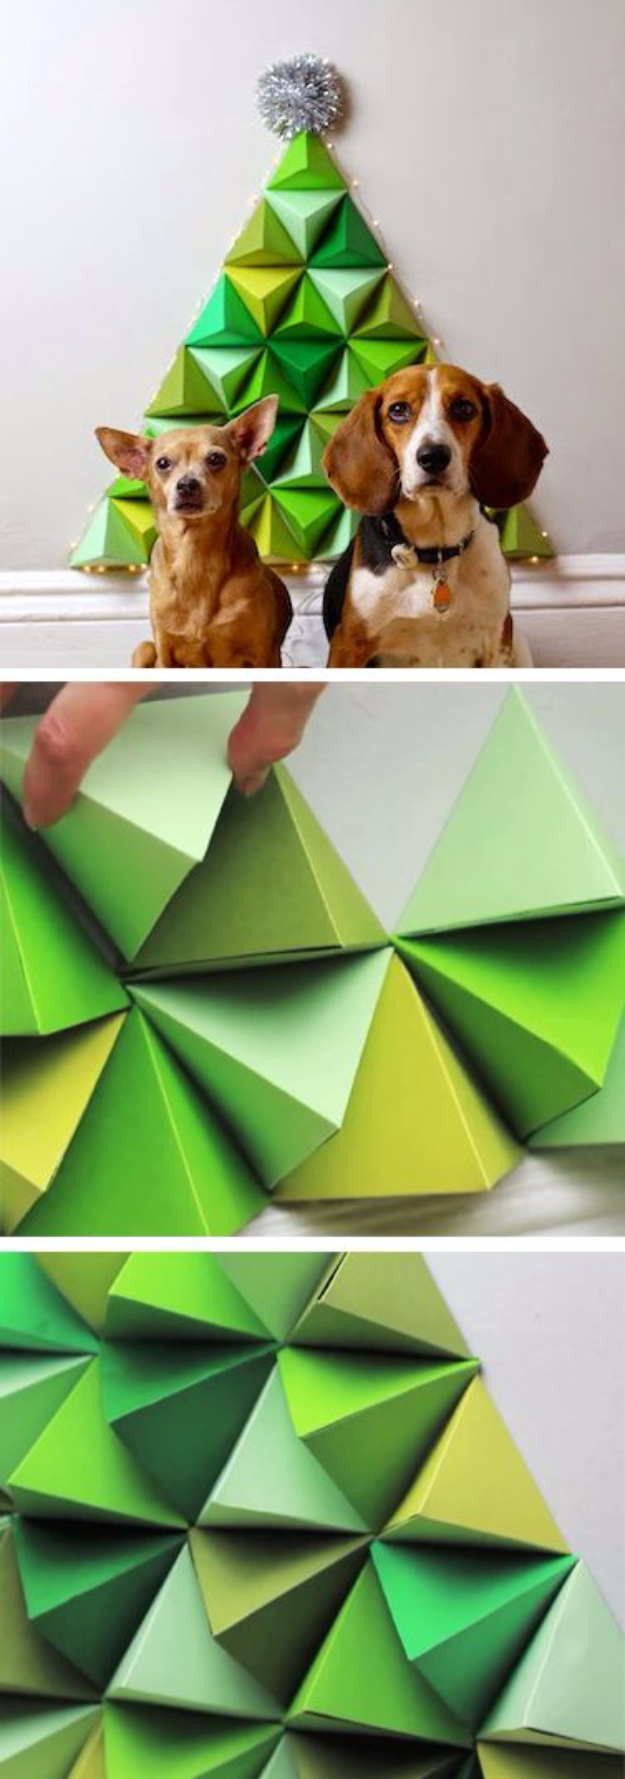 Best DIY Ideas for Your Christmas Tree - Geometric Paper Christmas Tree - Cool Handmade Ornaments, DIY Decorating Ideas and Ornament Tutorials - Creative Ways To Decorate Trees on A Budget - Cheap Rustic Decor, Easy Step by Step Tutorials - Holiday Crafts for Kids and Gifts To Make For Friends and Family http://diyjoy.com/diy-ideas-christmas-tree